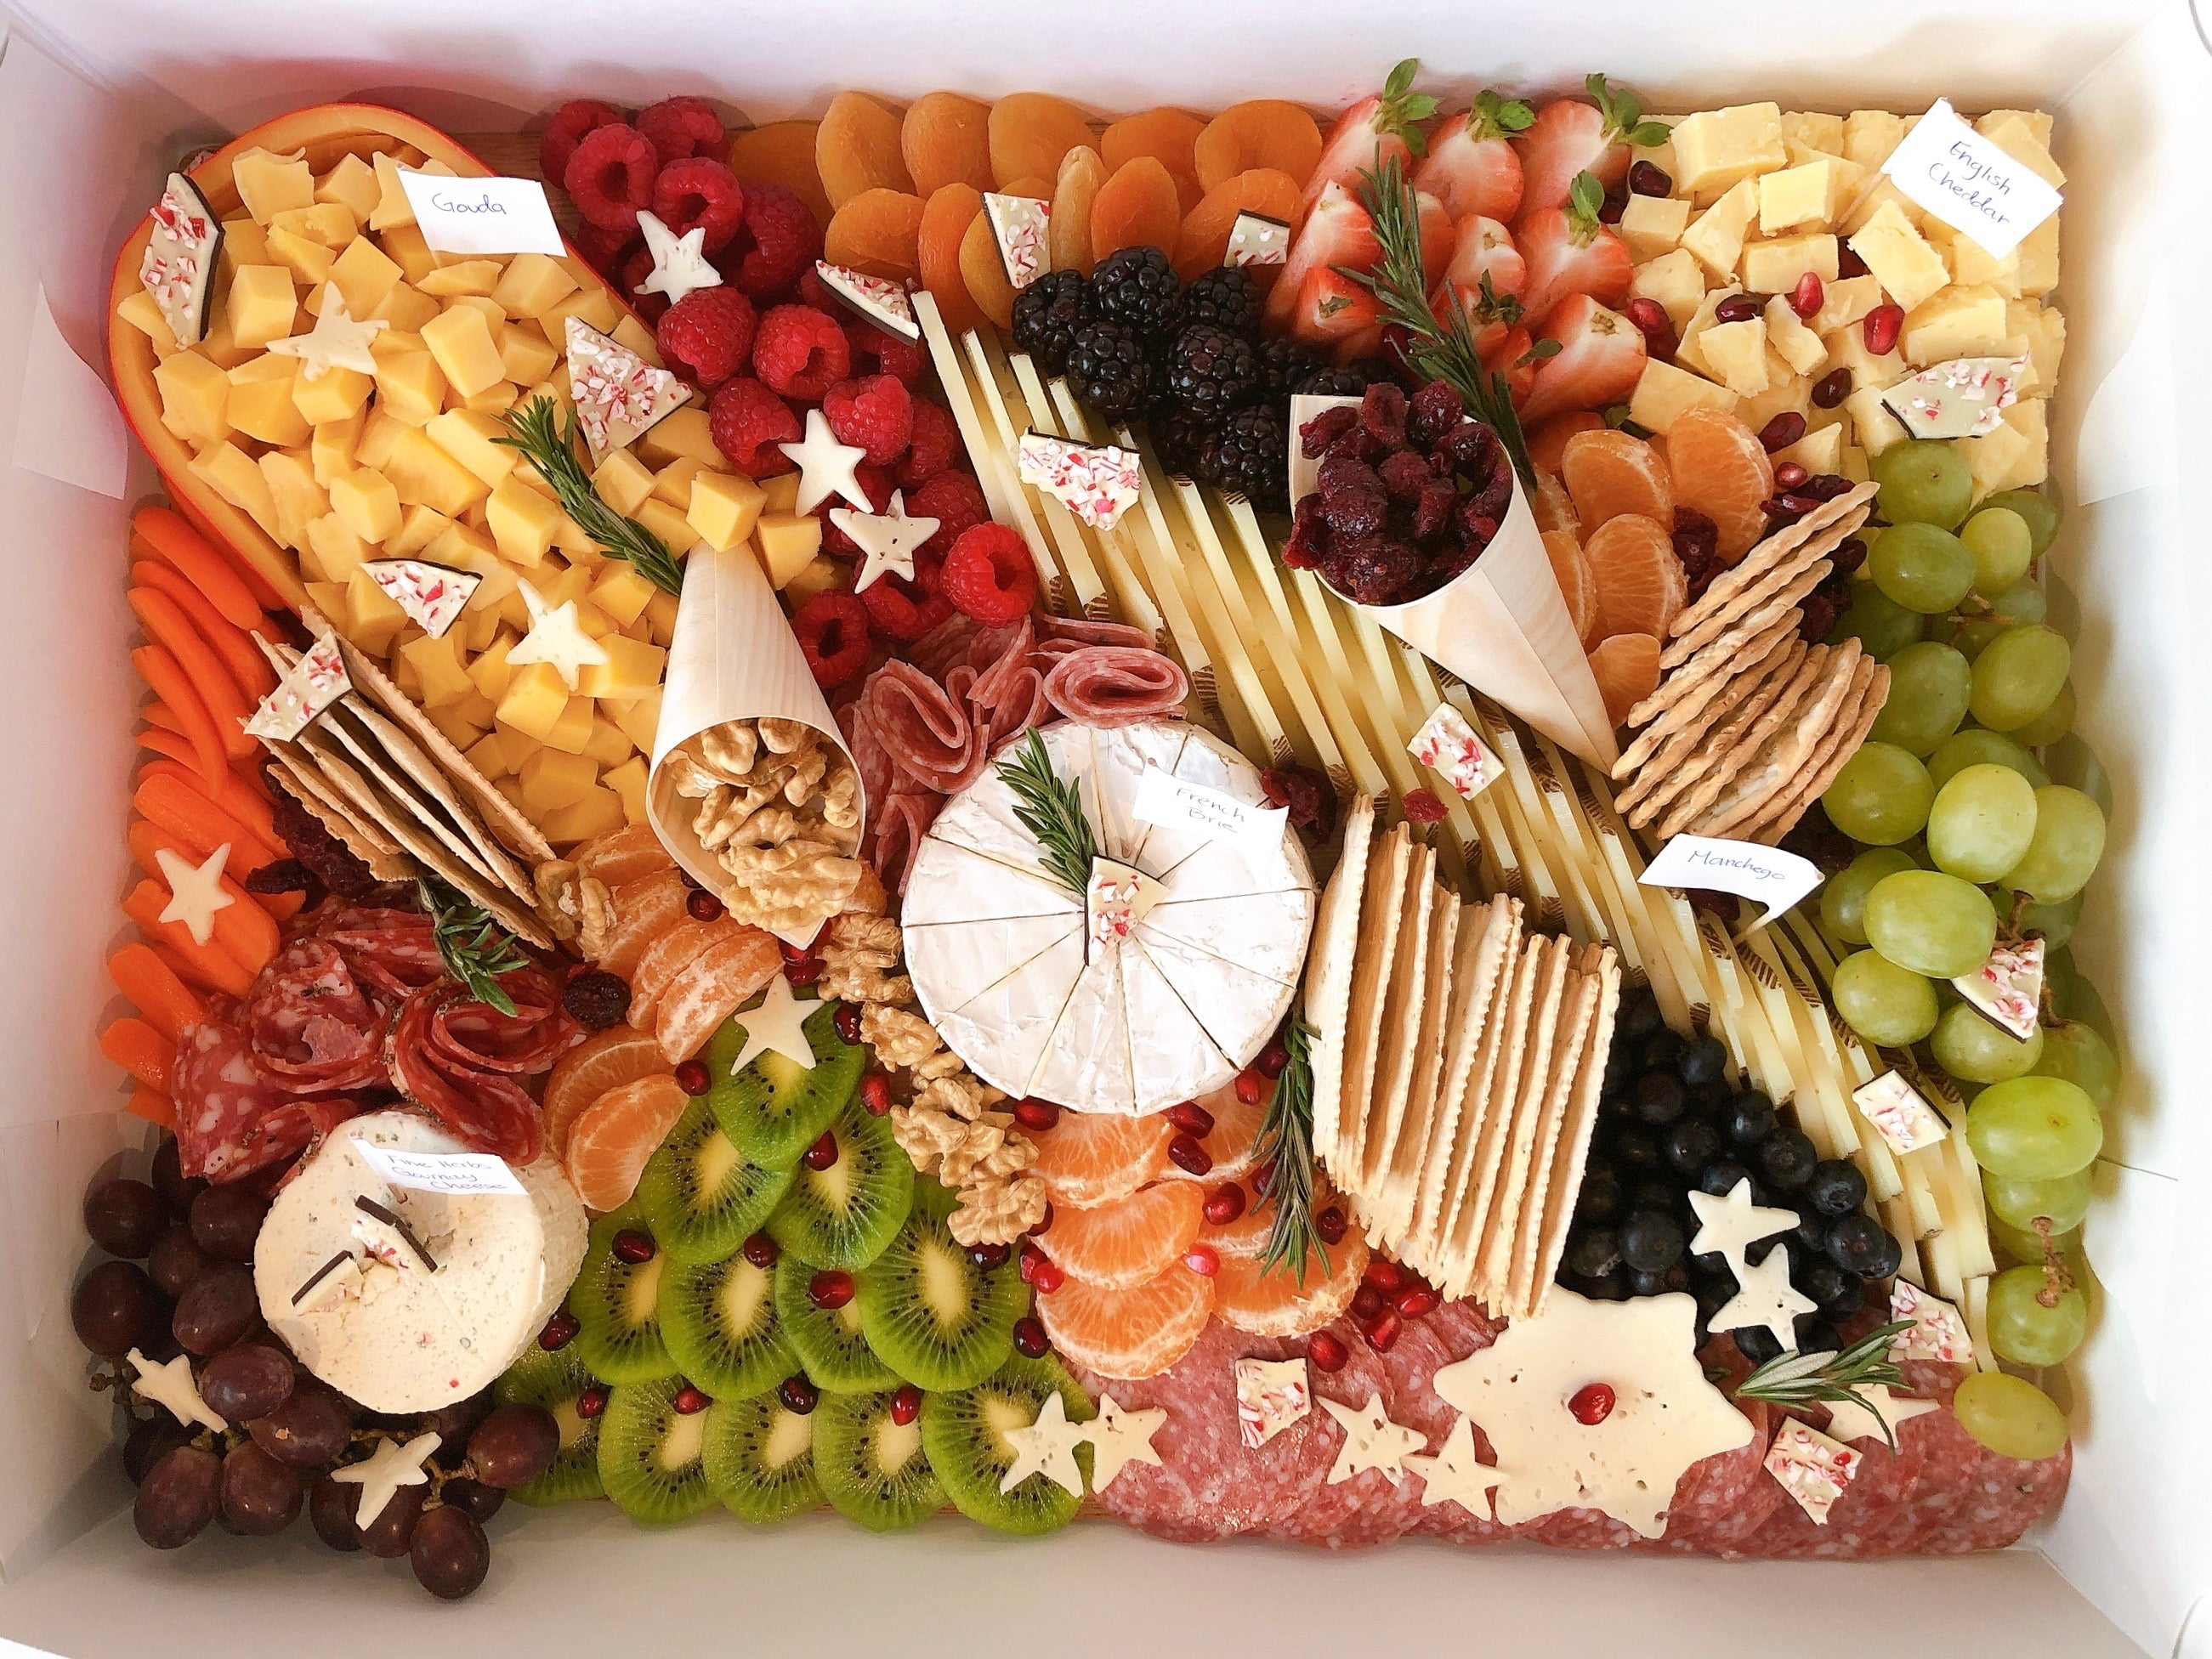 Large Cheeseboard For 20-25 People